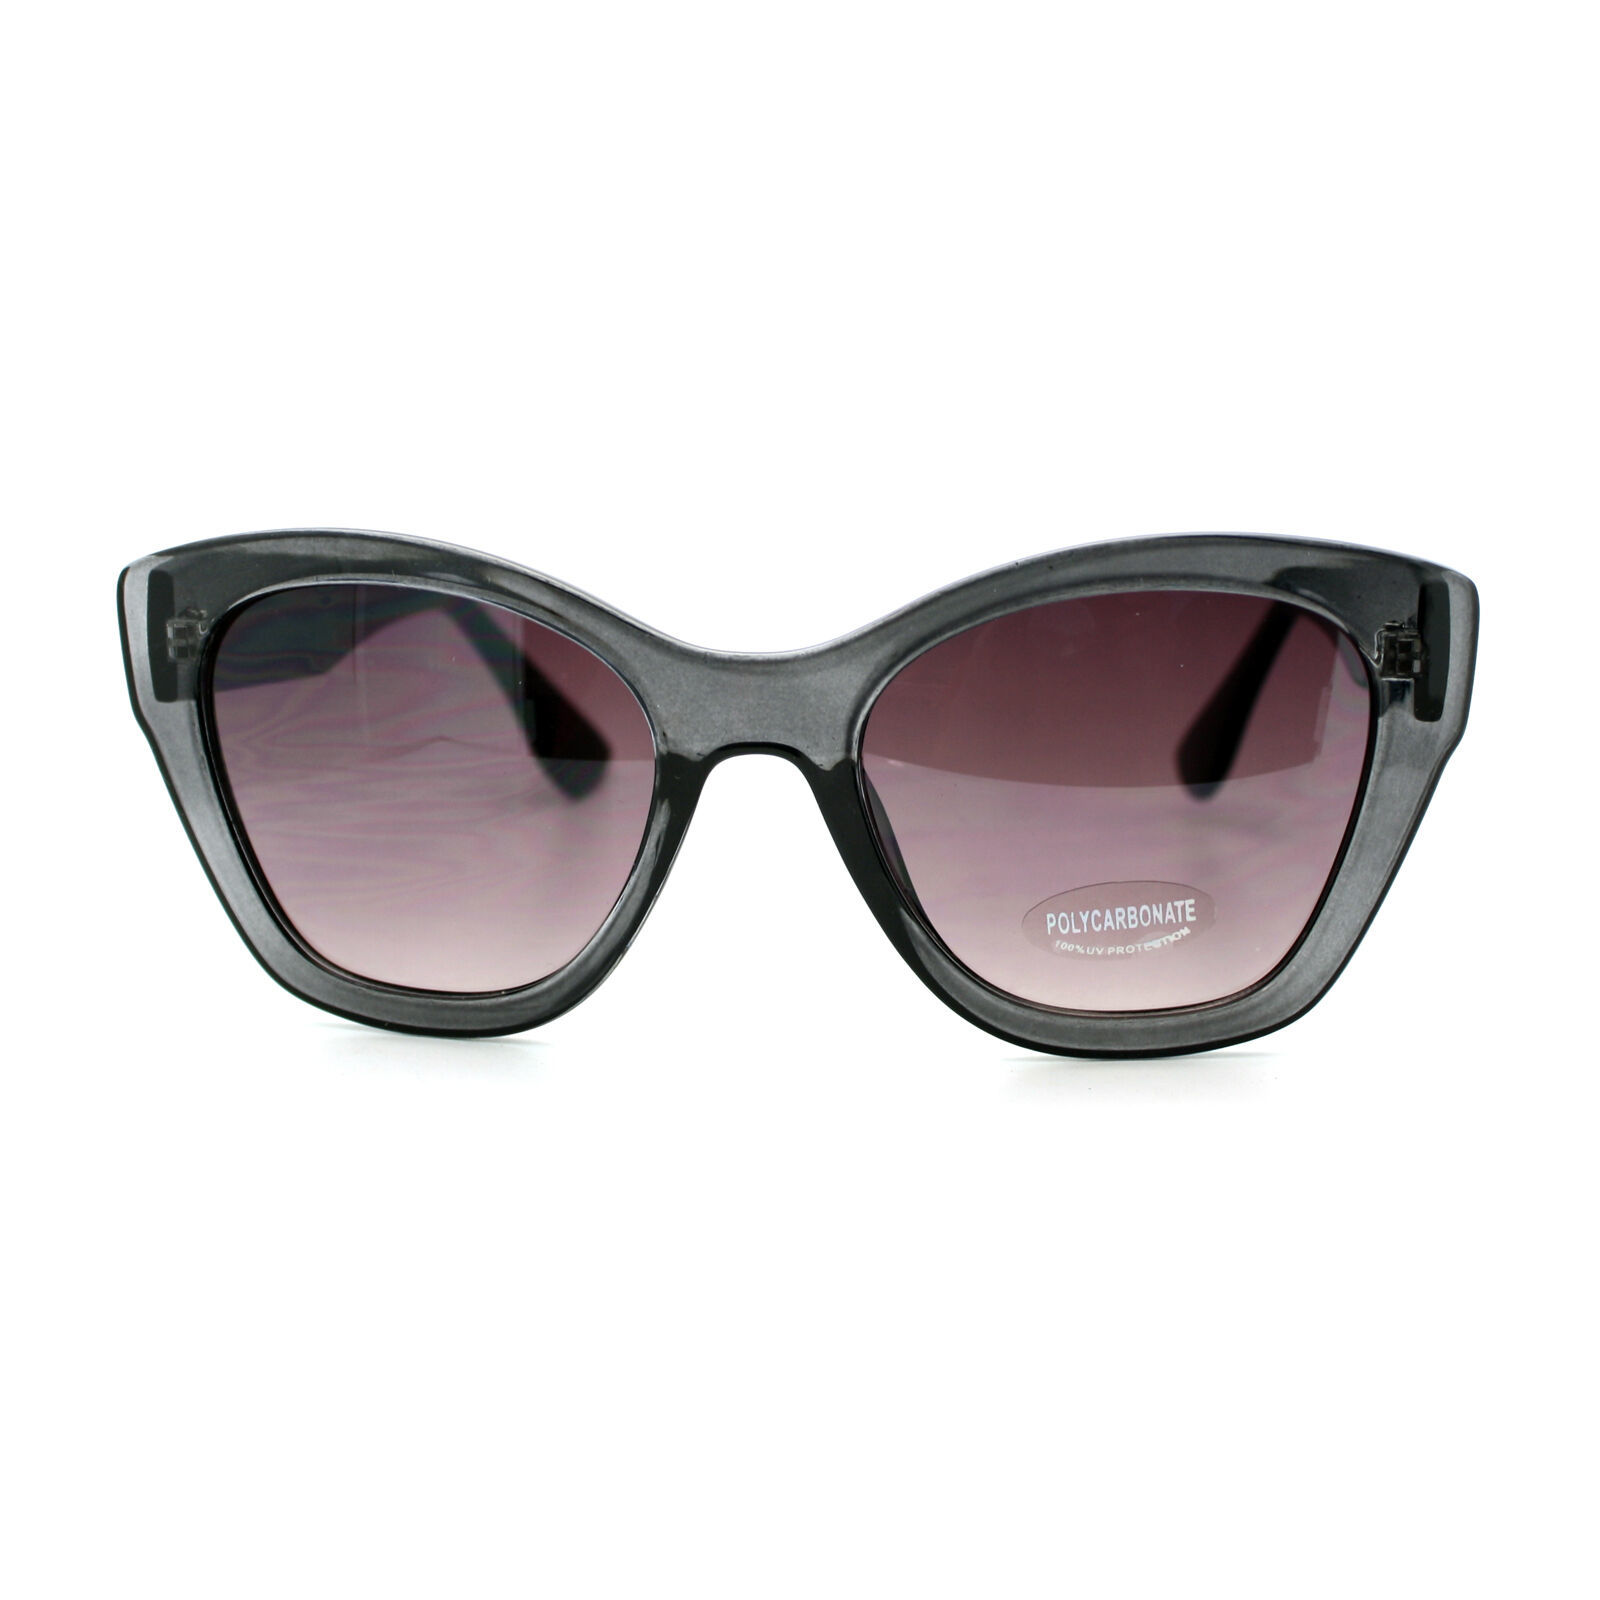 Women's Fashion Sunglasses Oversized Butterfly Square Cateye